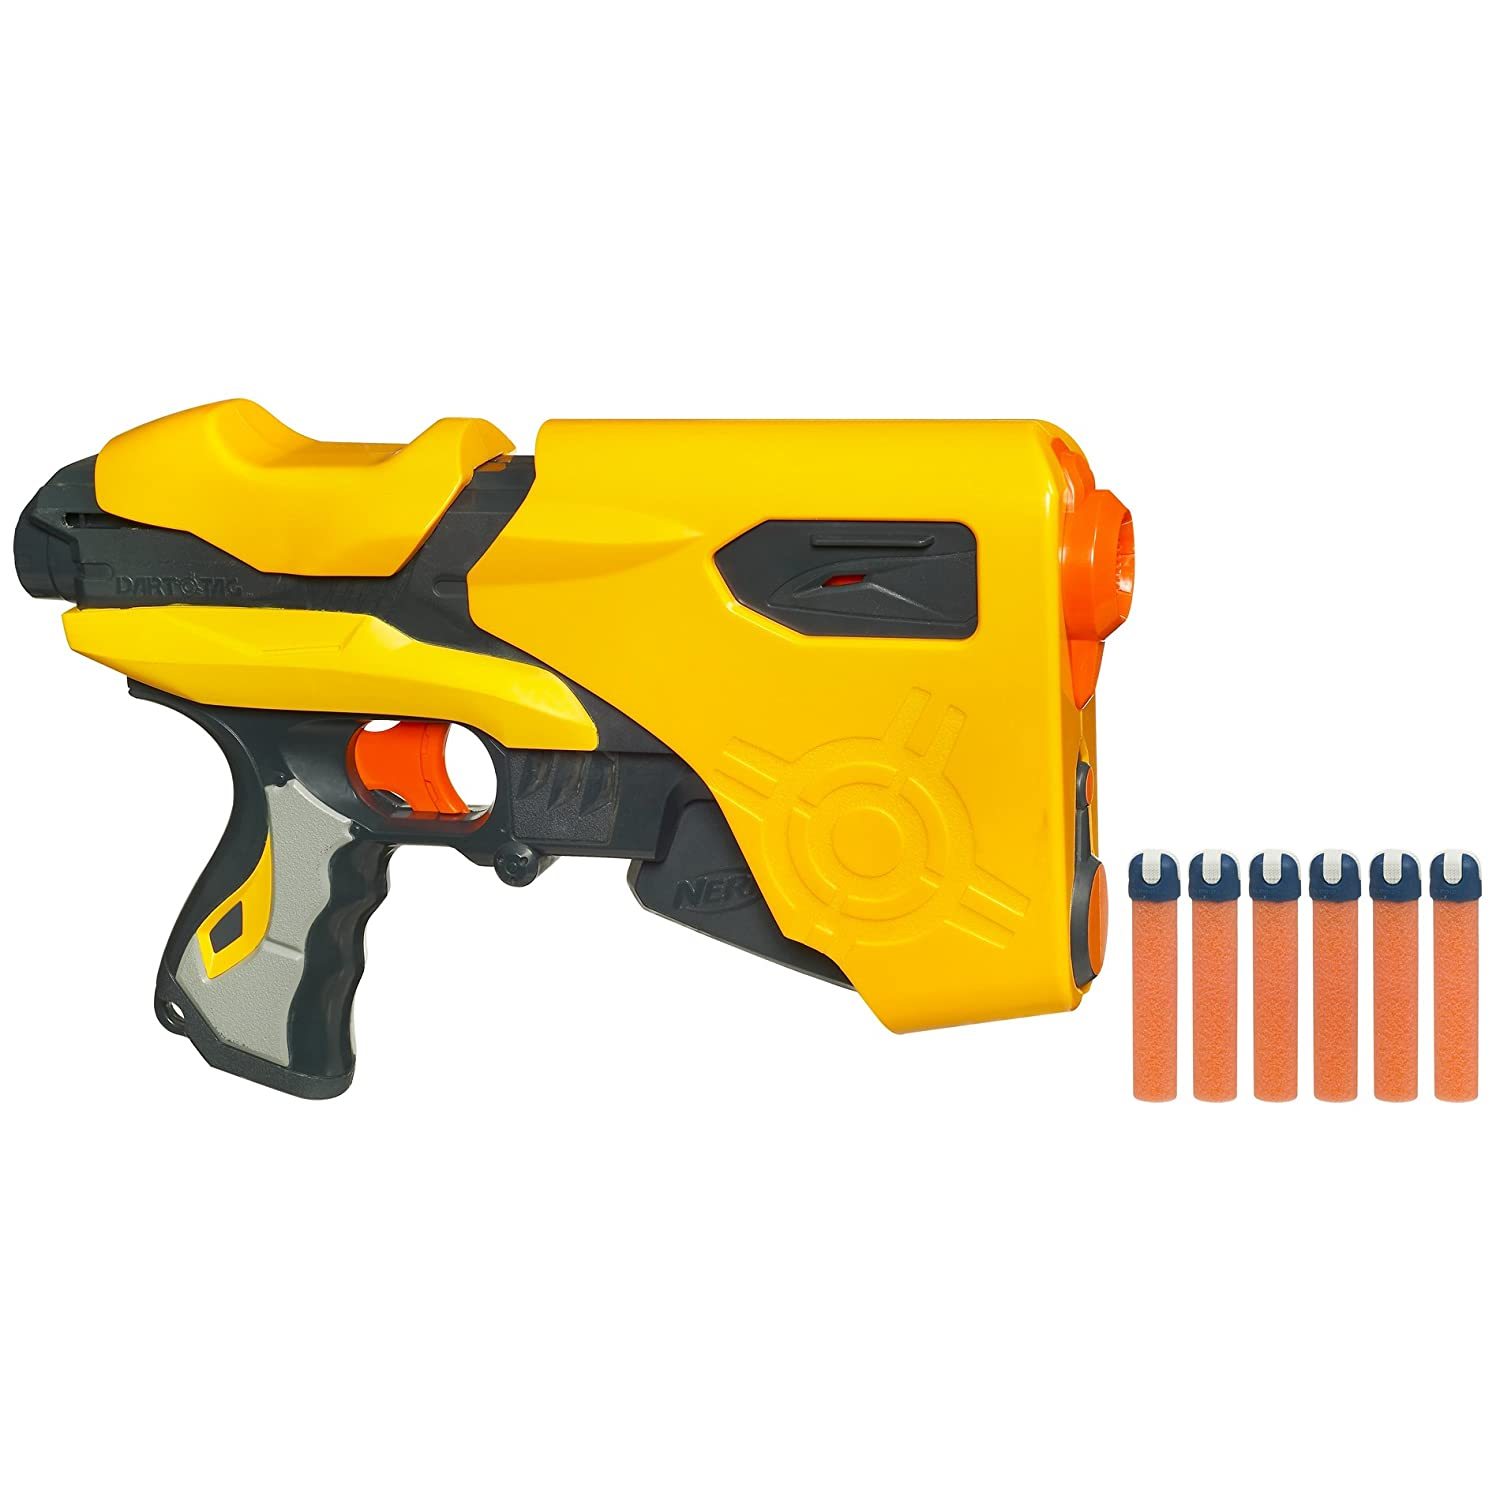 The Mother of 'Em All. So buy the Nerf gun ...